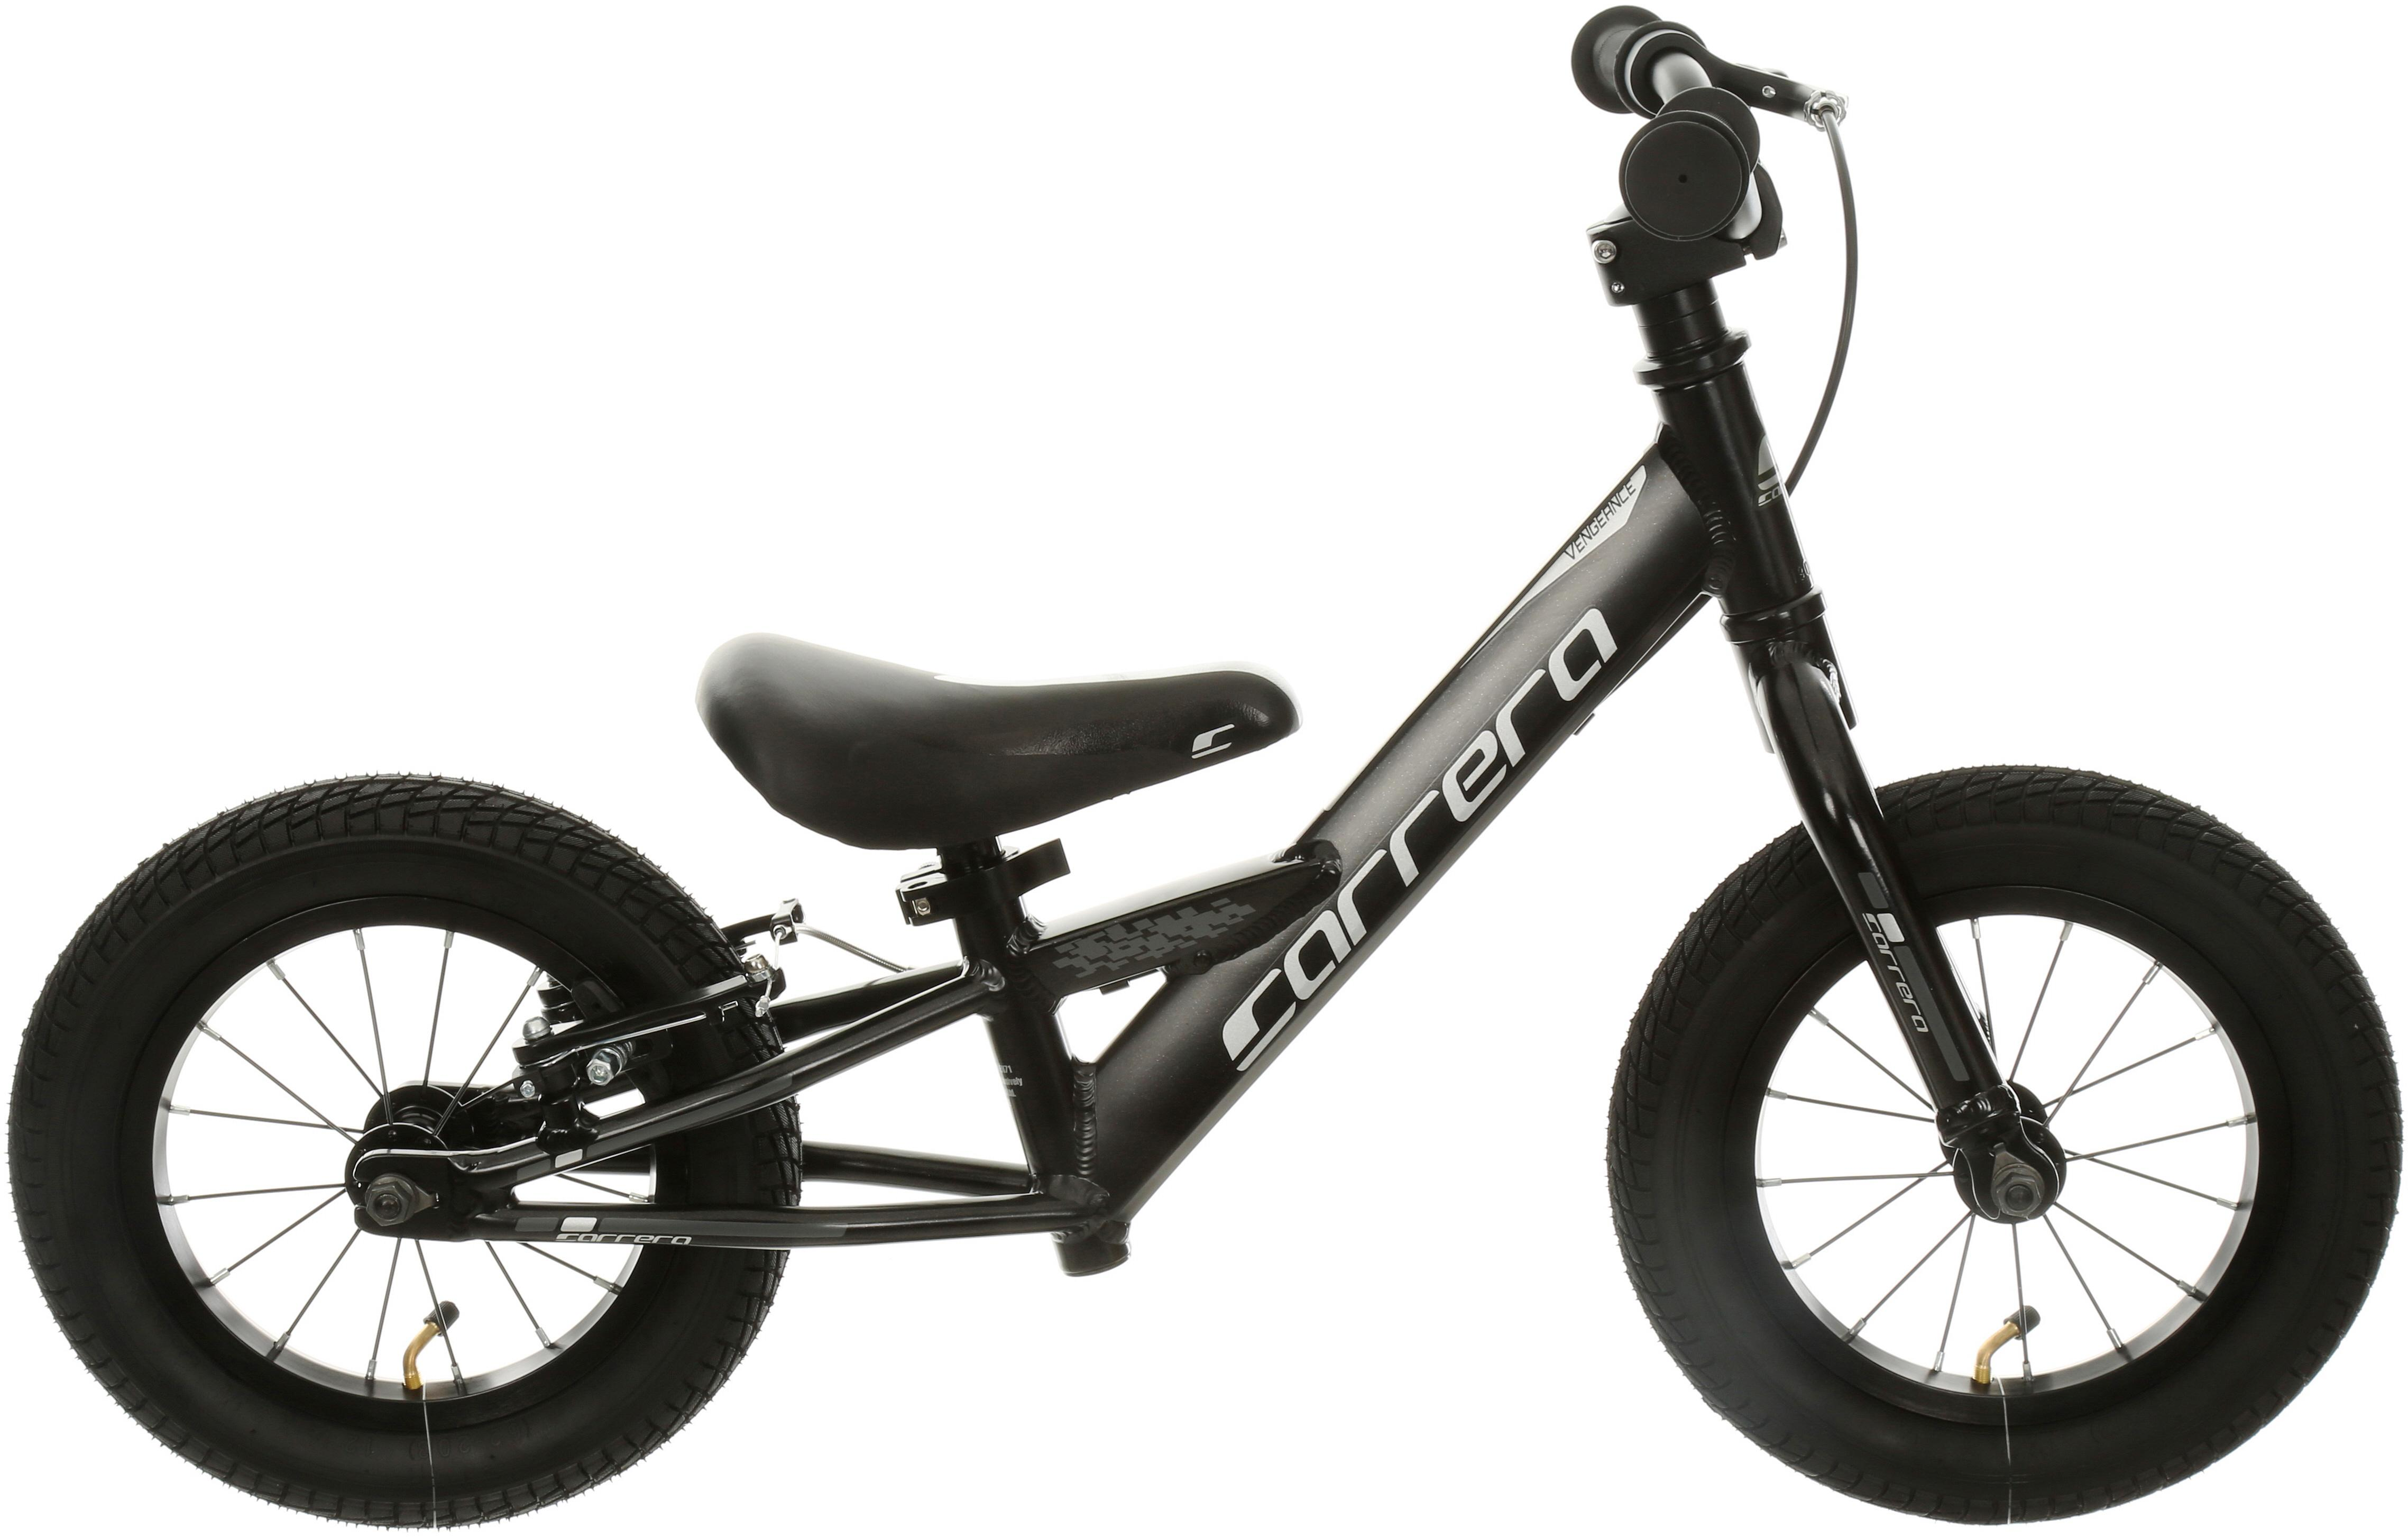 Carrera Vengeance Balance Bike - 12 inch Wheel